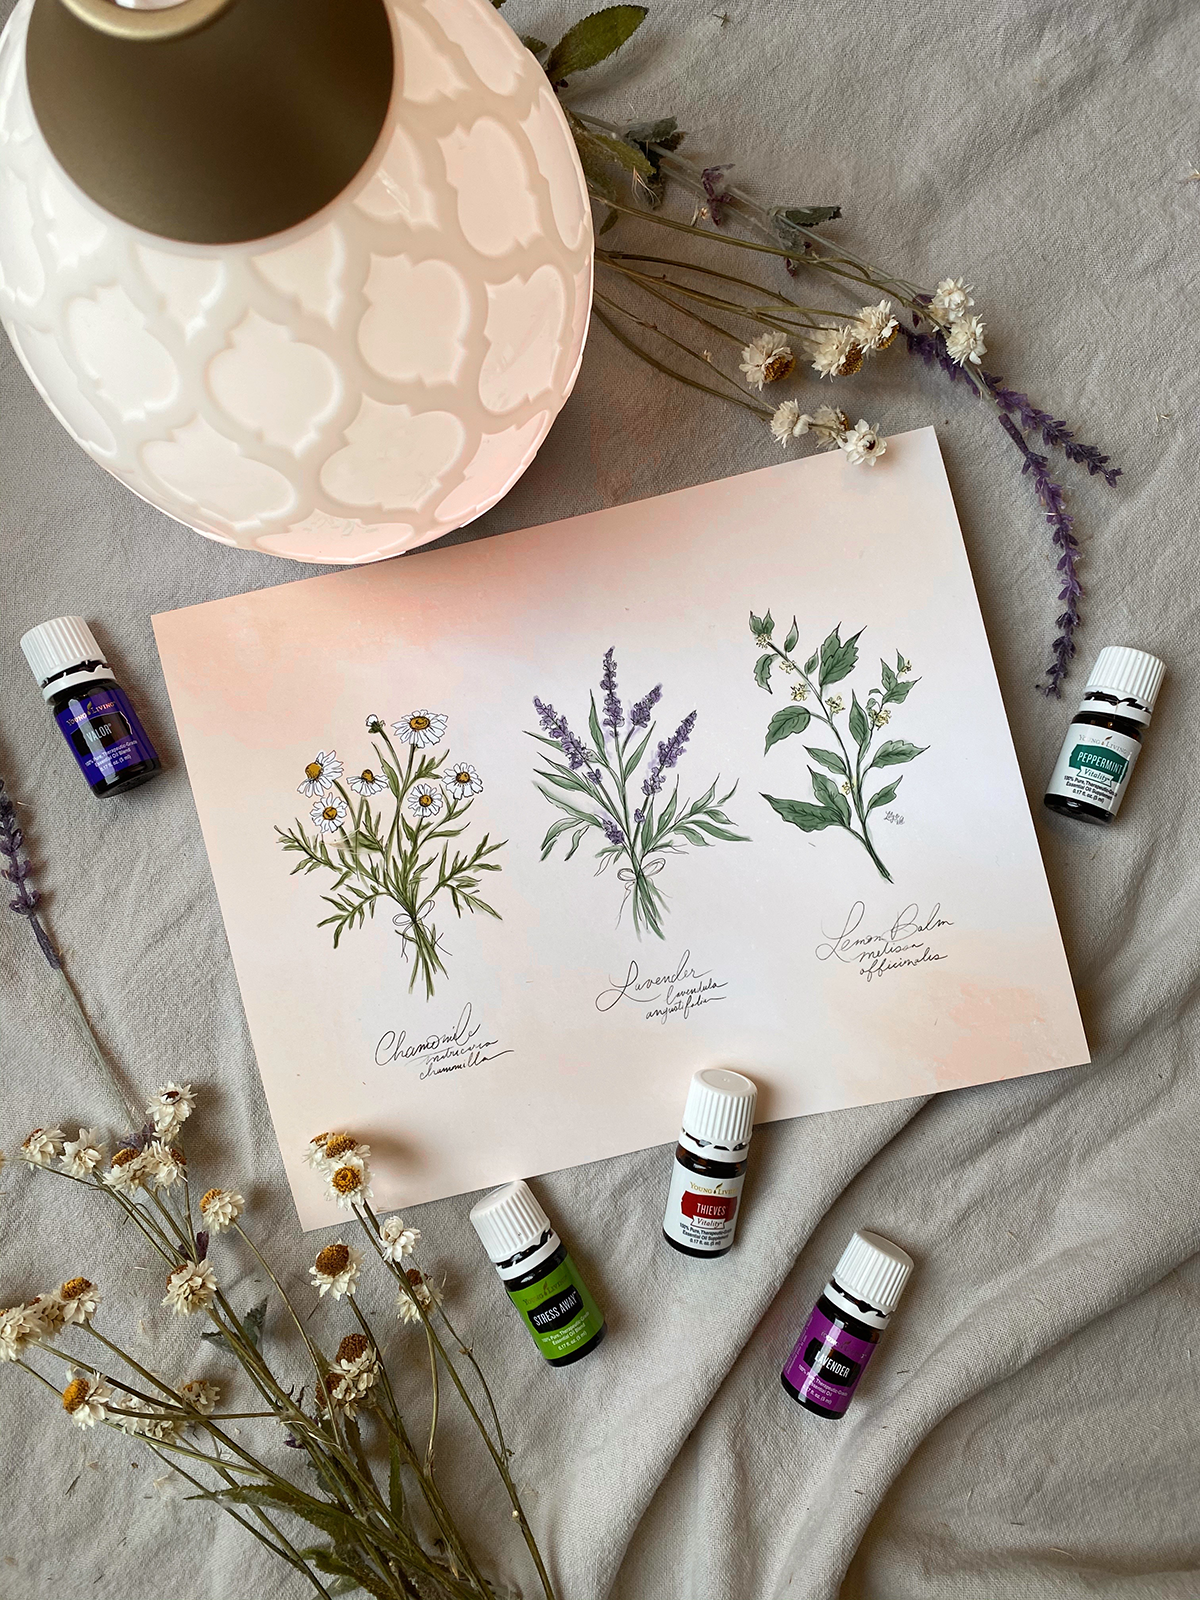 Using Young Living Essential Oils for Wellness